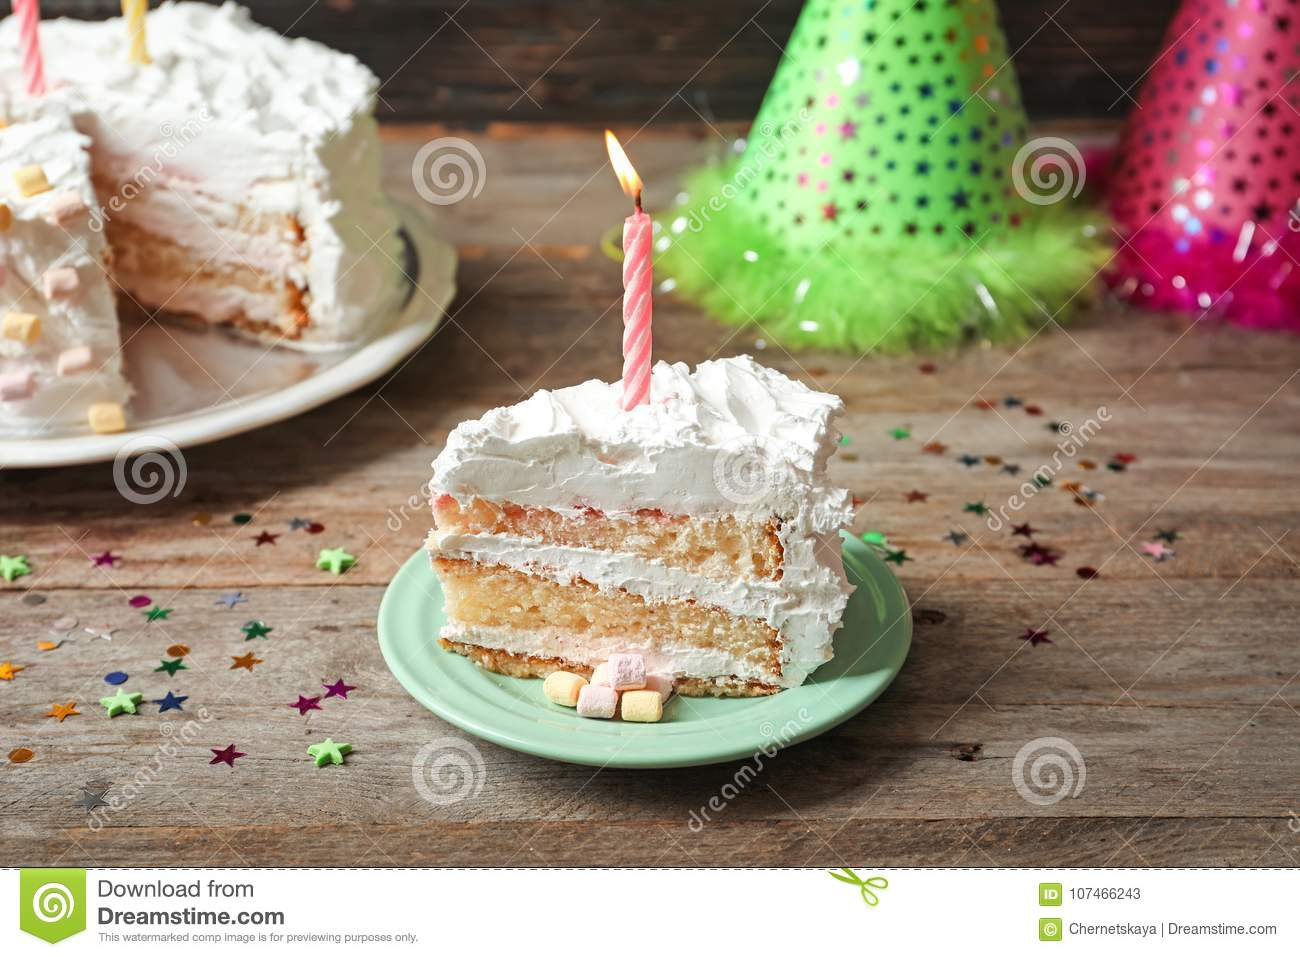 Incredible Piece Of Birthday Cake With Candle Stock Image Image Of Festive Personalised Birthday Cards Petedlily Jamesorg